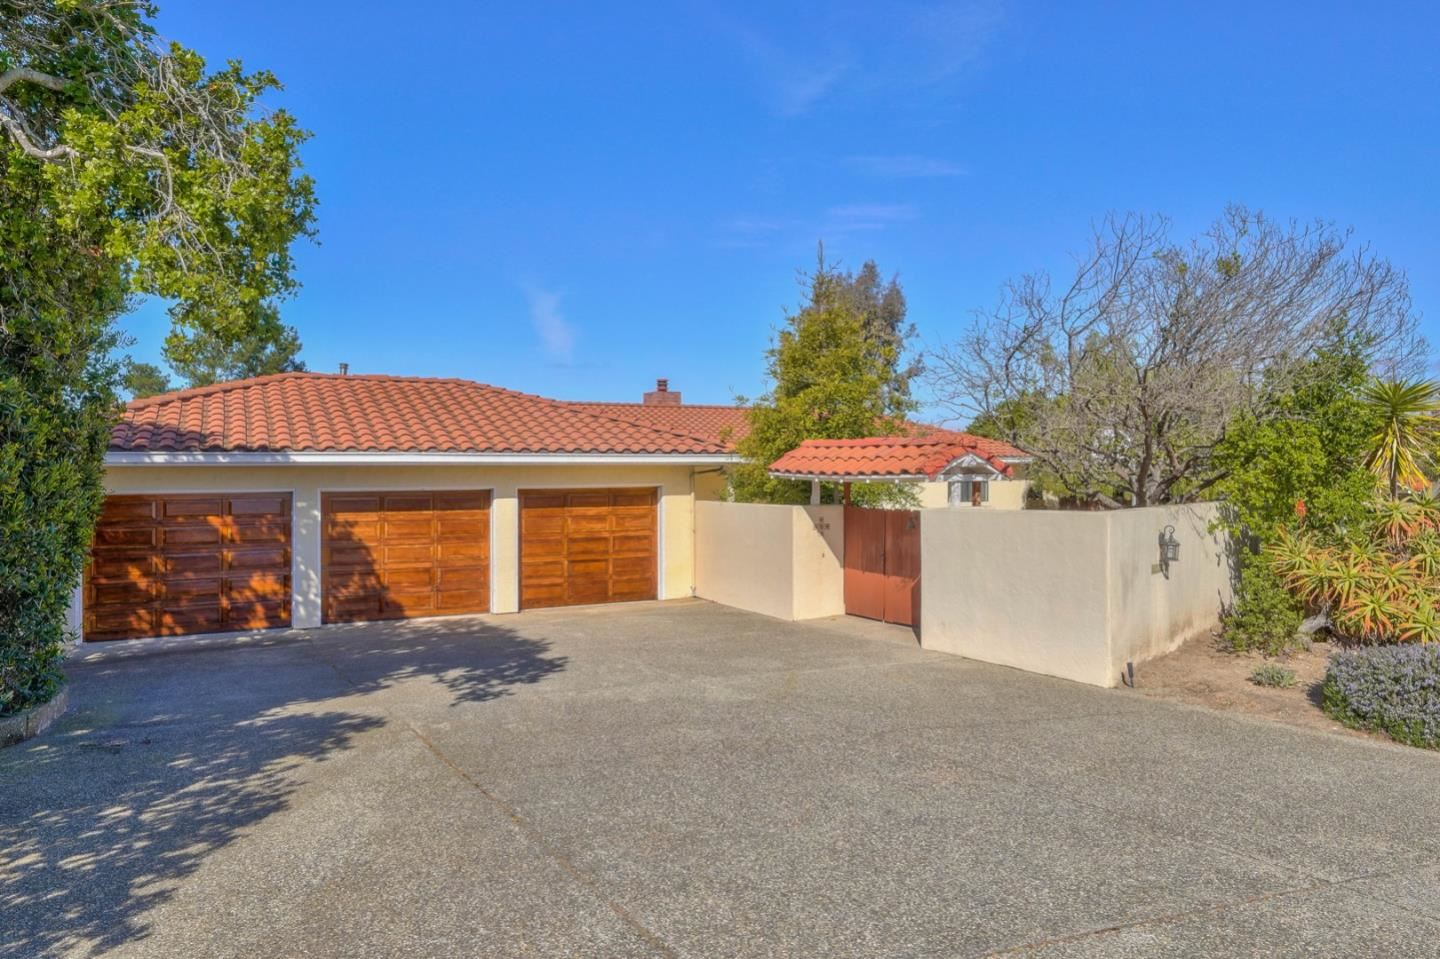 Photo for 25380 Boots Road, MONTEREY, CA 93940 (MLS # ML81839585)